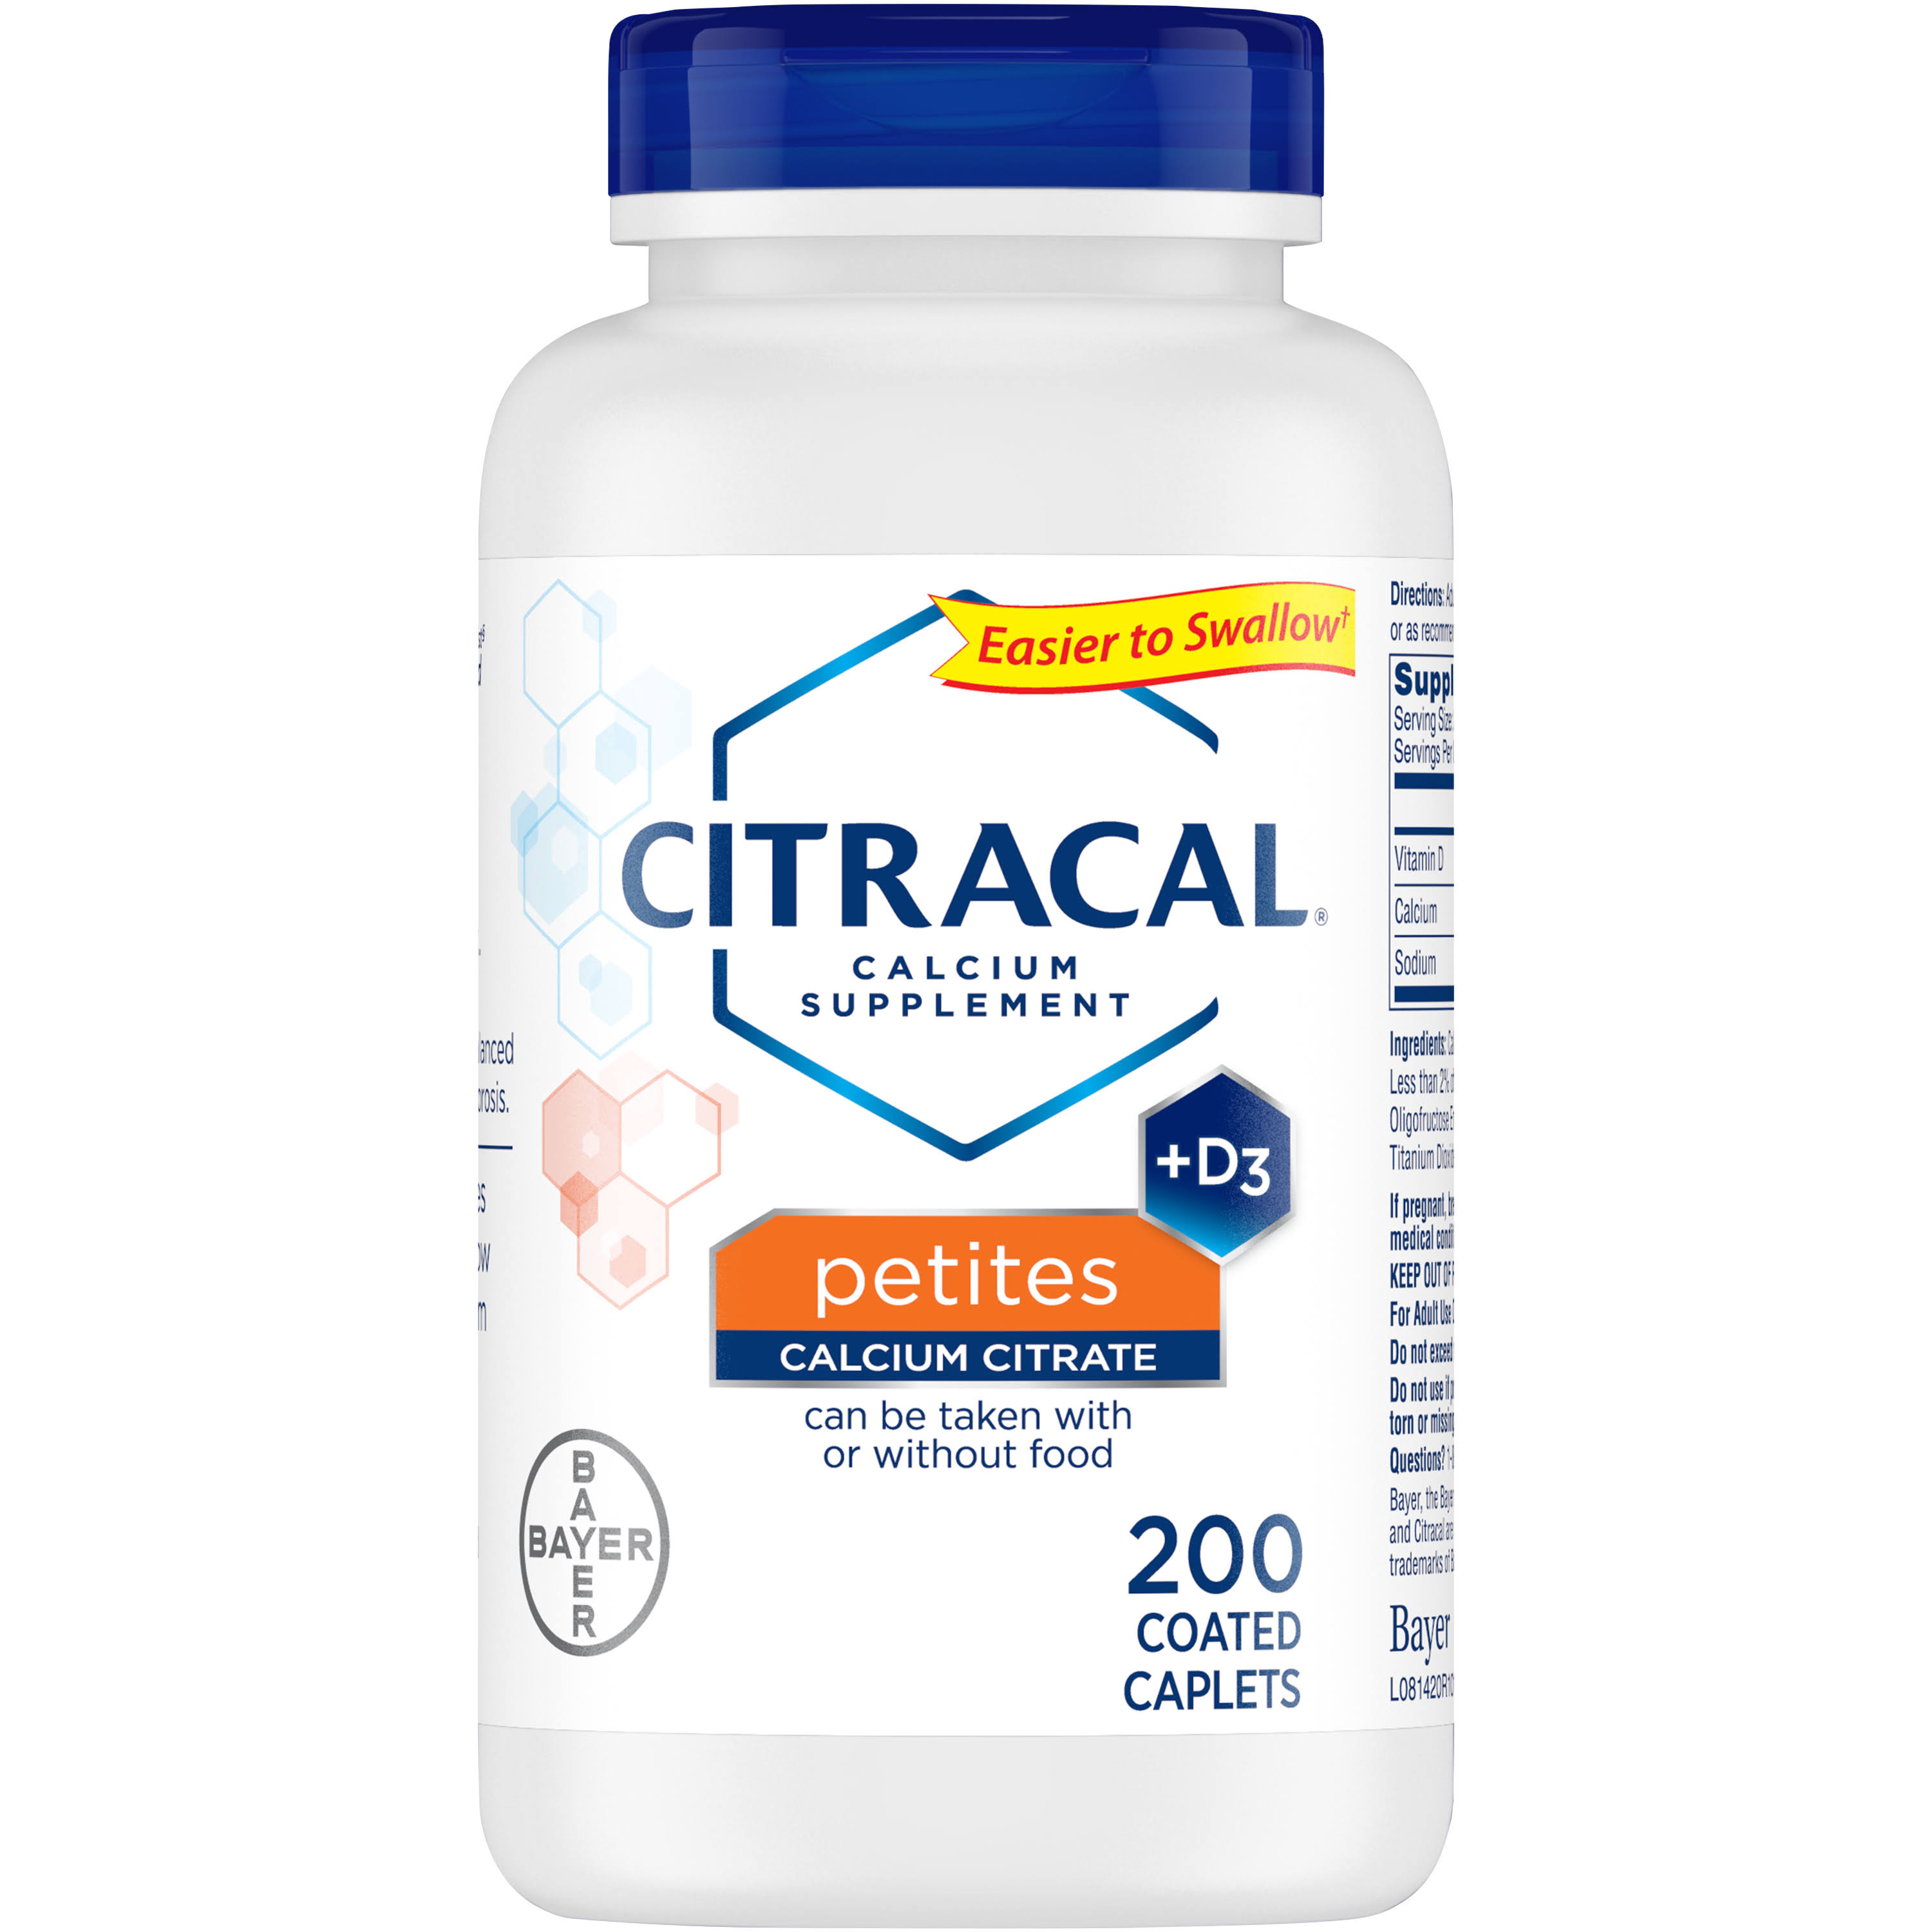 Citracal Plus D3 Petites Calcium Supplement - 200ct